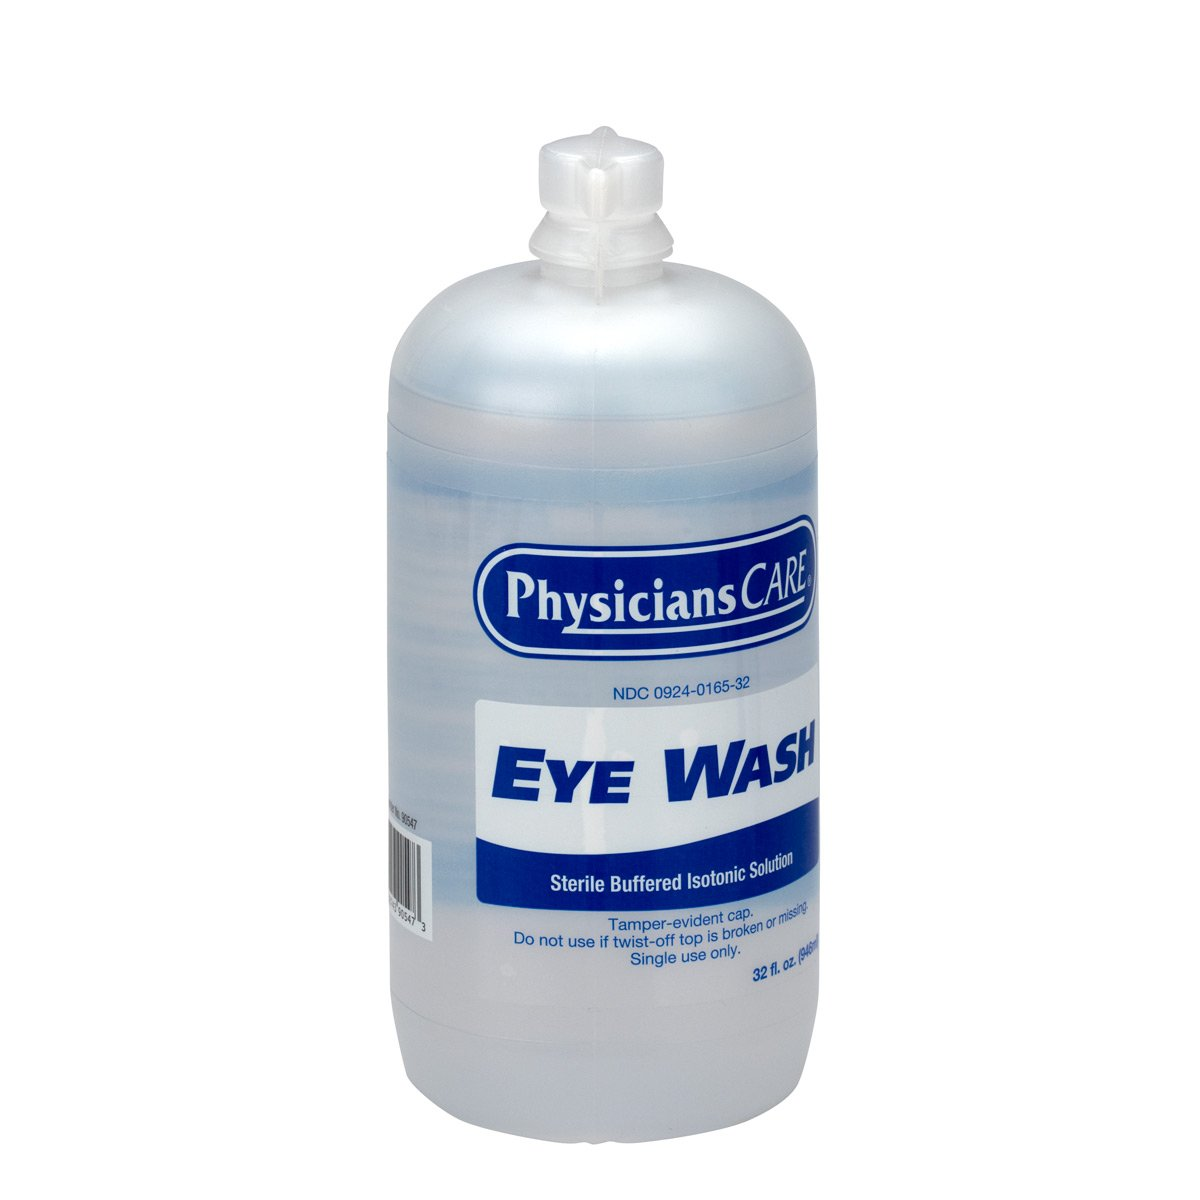 PhysiciansCare by First Aid Only 500-90547 Eyewash Bottle, 32 oz. (Pack of 12) by First Aid Only (Image #2)